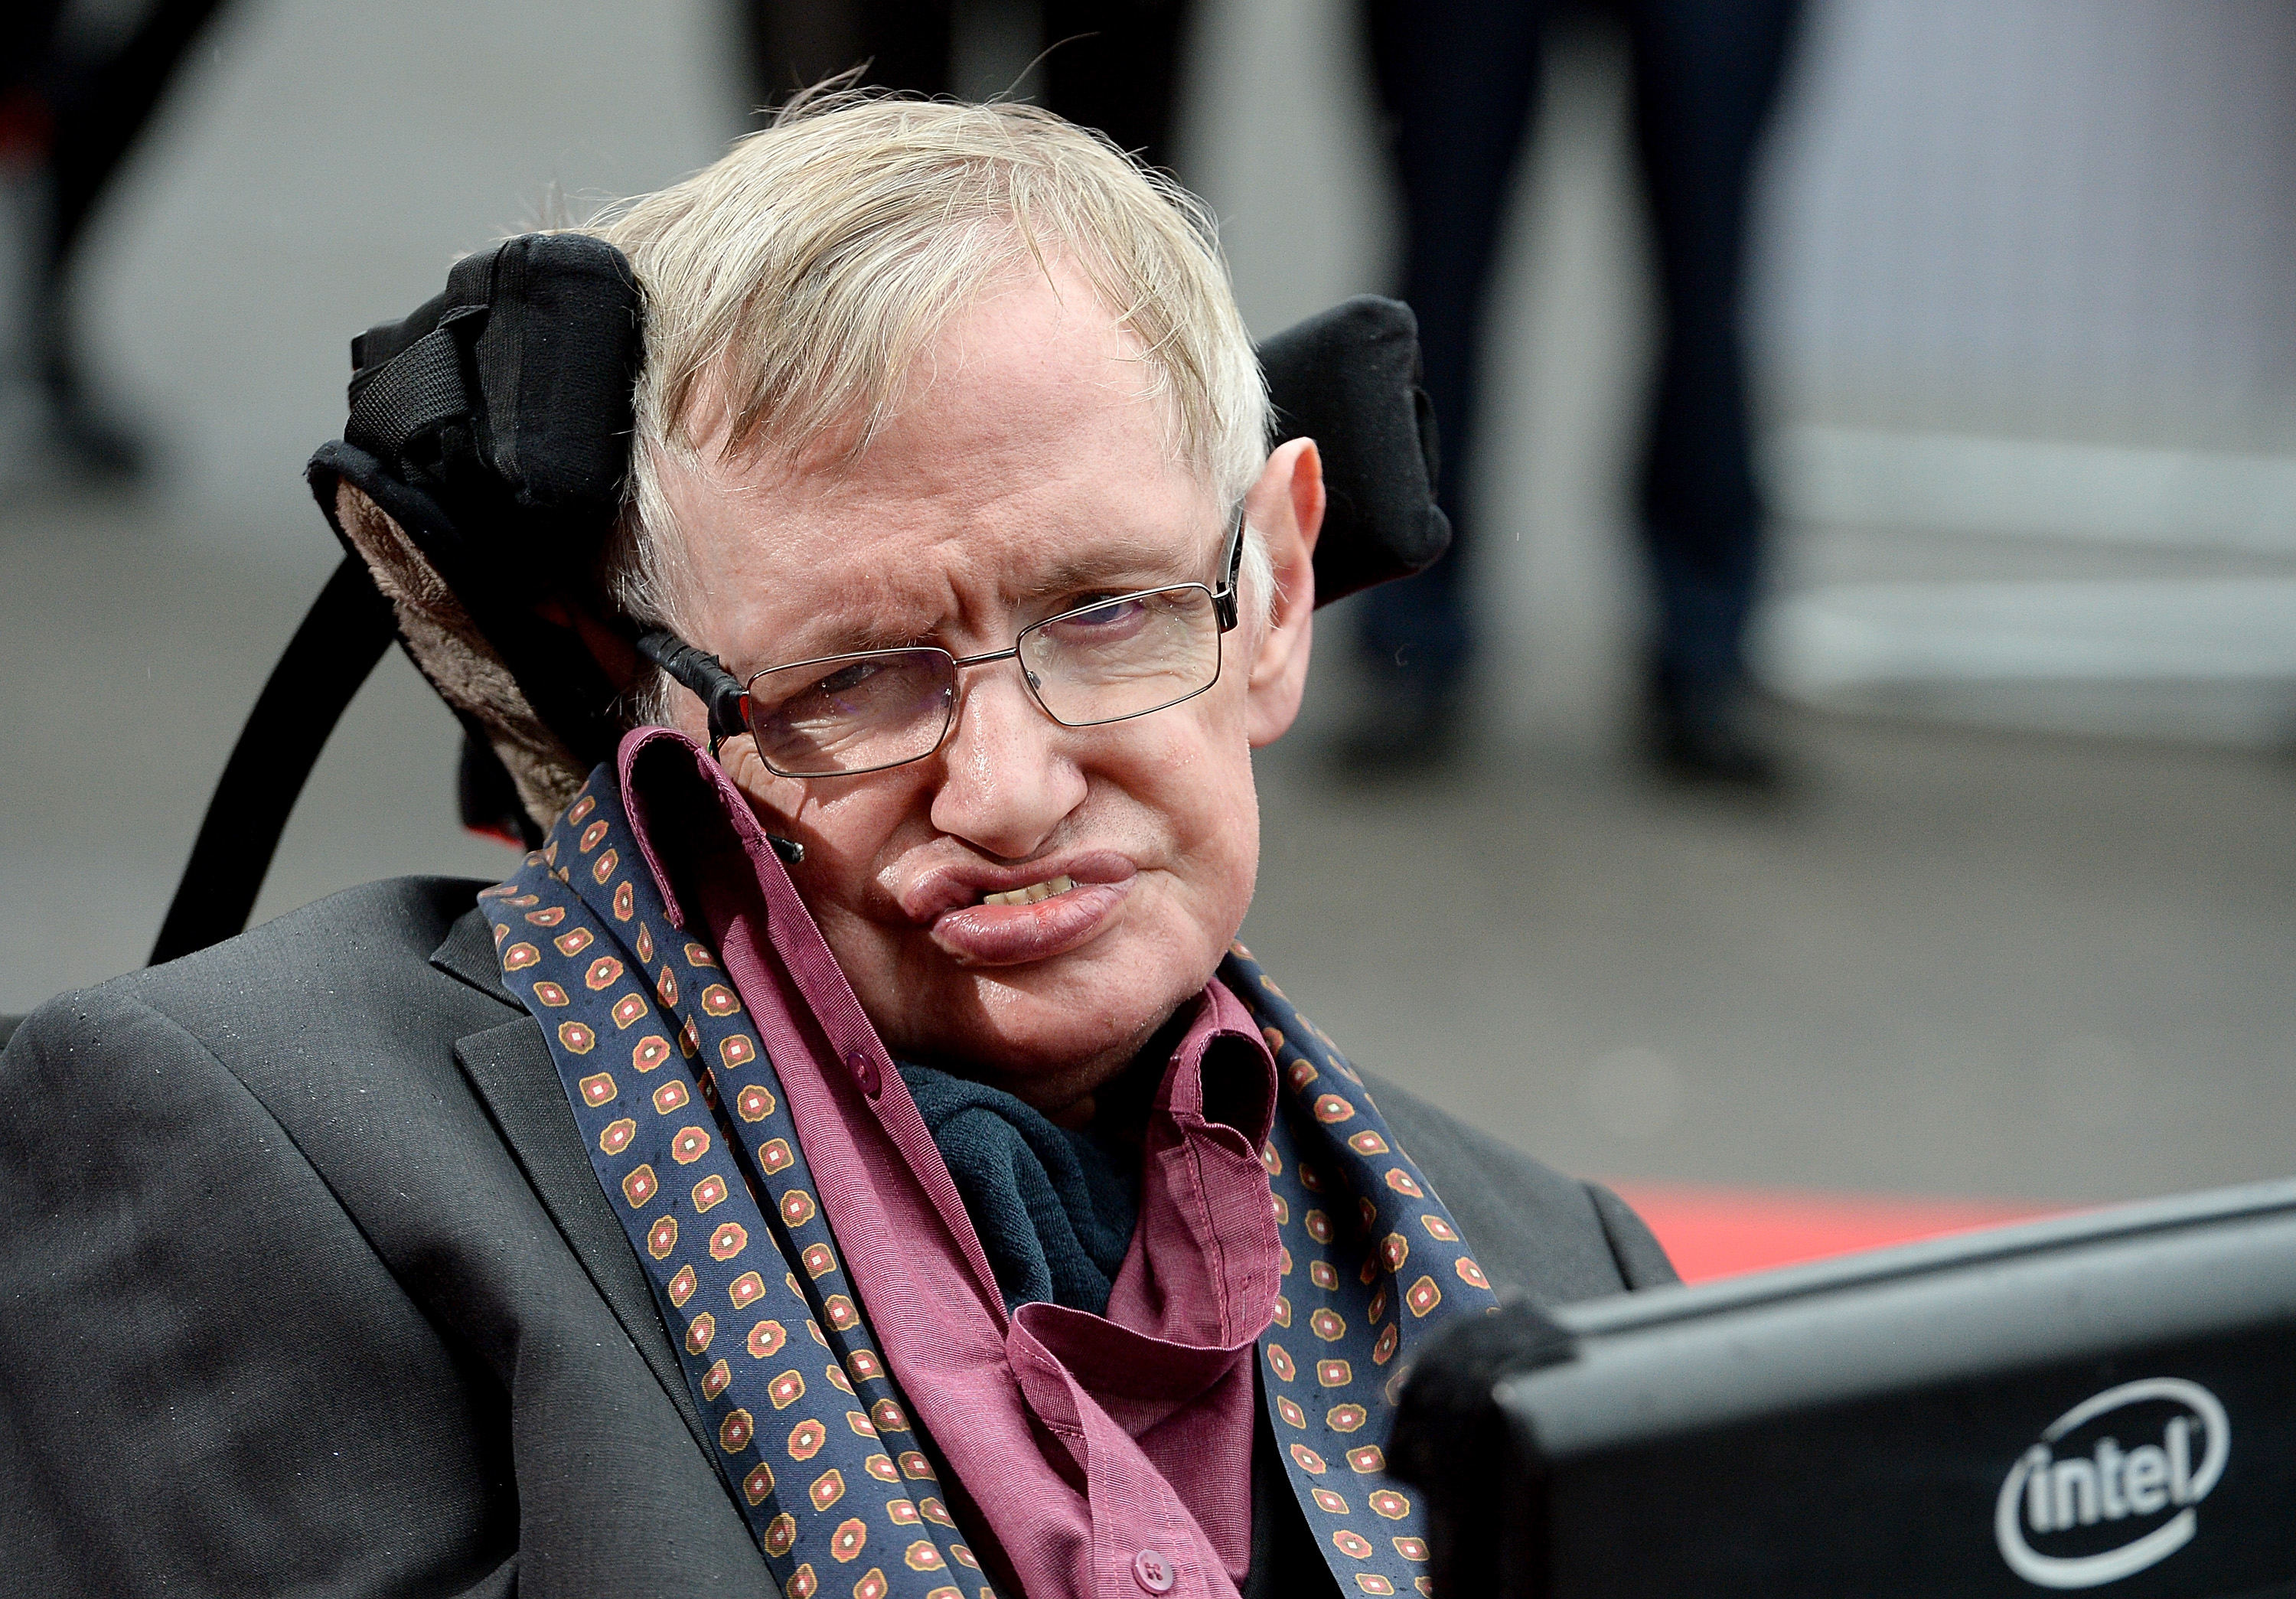 Stephen Hawking  attends  Interstellar Live  at Royal Albert Hall on March 30, 2015 in London, England.